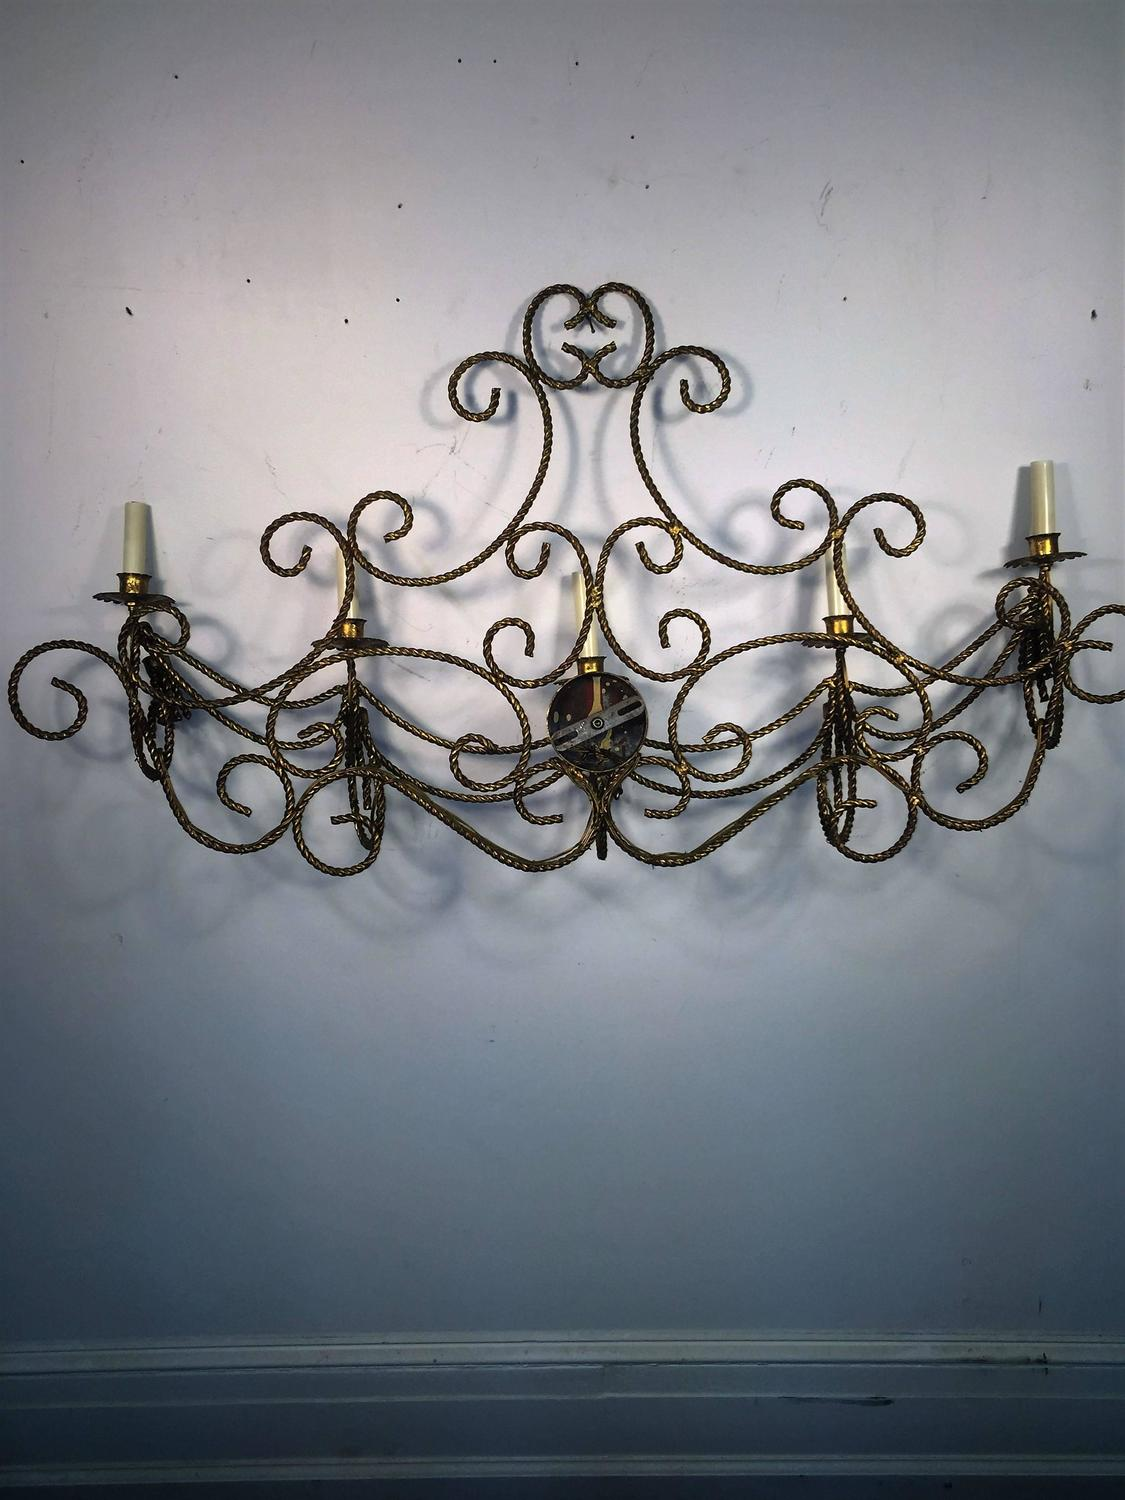 Wall Sconces High End : Monumental Pair of High End Italian Gilt Rope and Tassle Design Sconces For Sale at 1stdibs